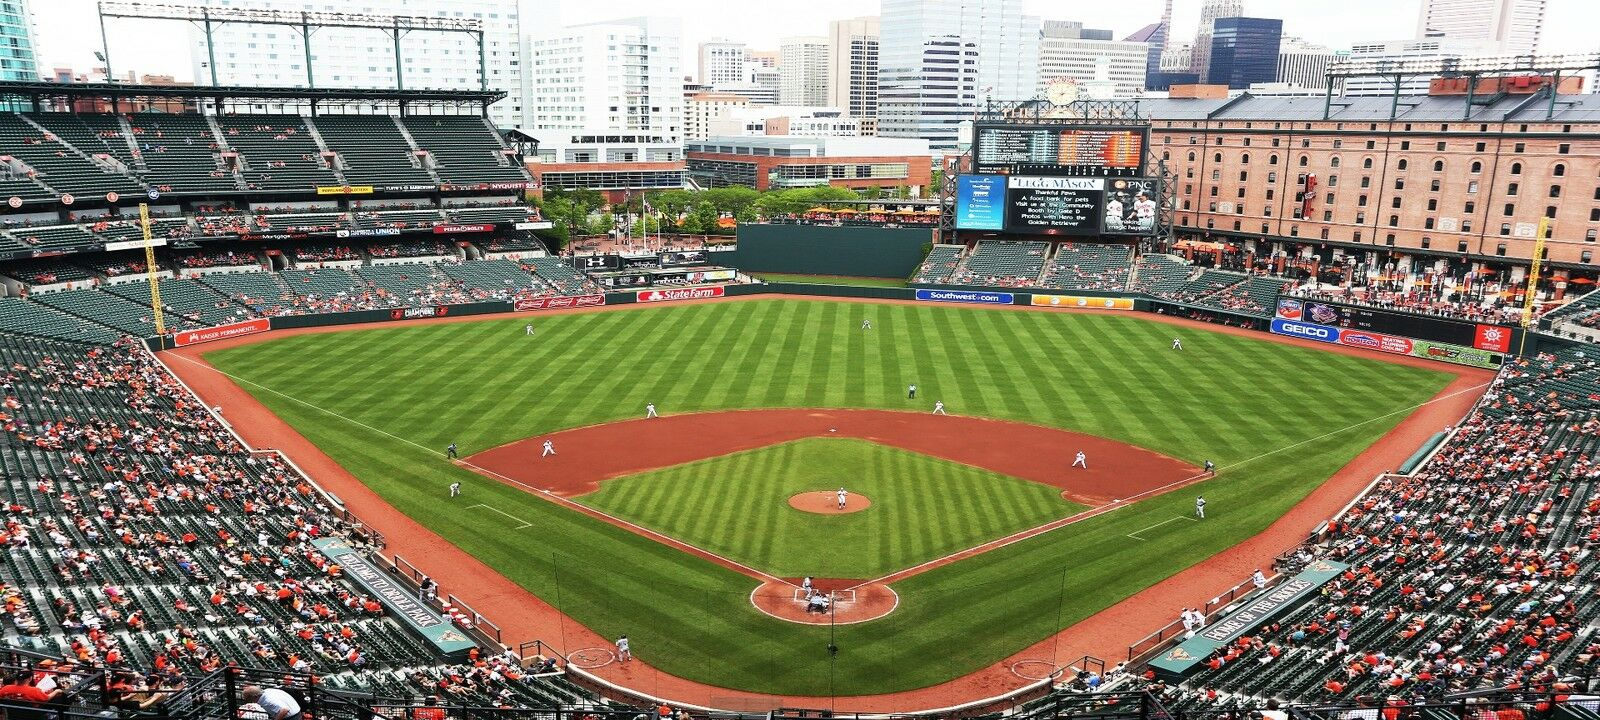 New York Yankees at Baltimore Orioles Tickets (Friday Fireworks)